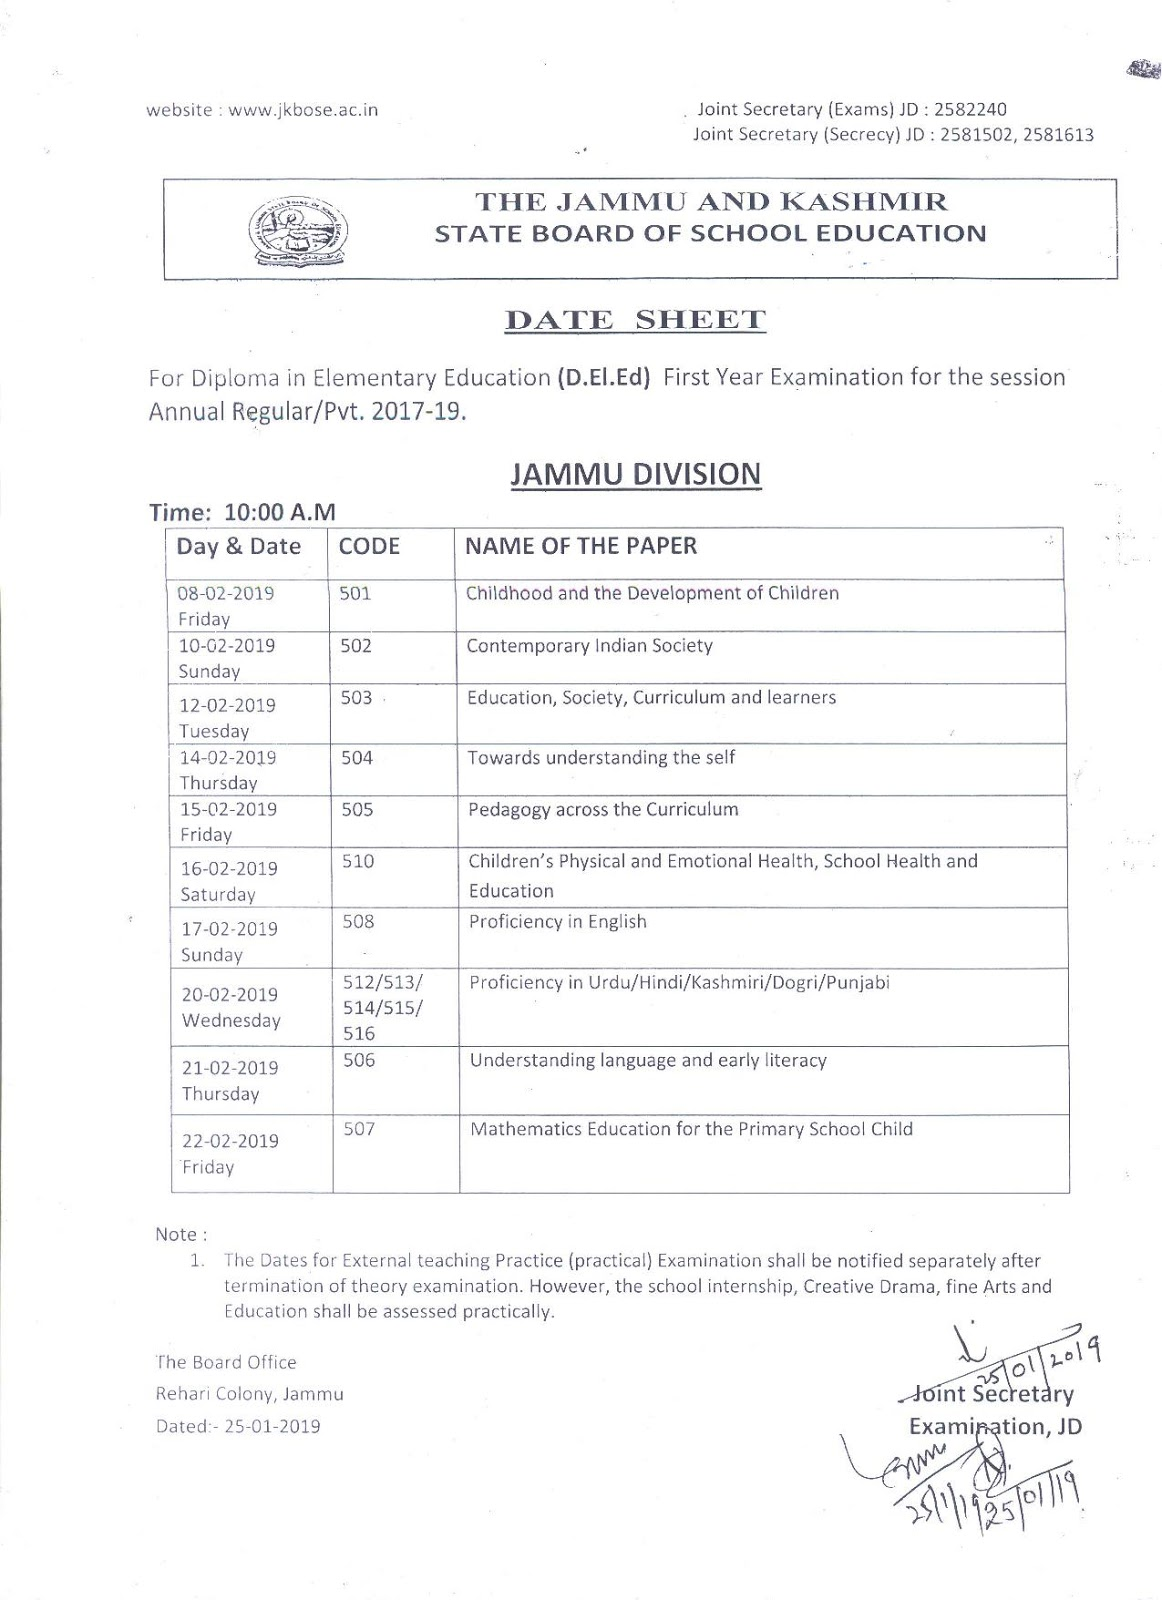 JKBOSE Date Sheet for D.El.Ed First Year Exam for Session RegularPvt 2017-19